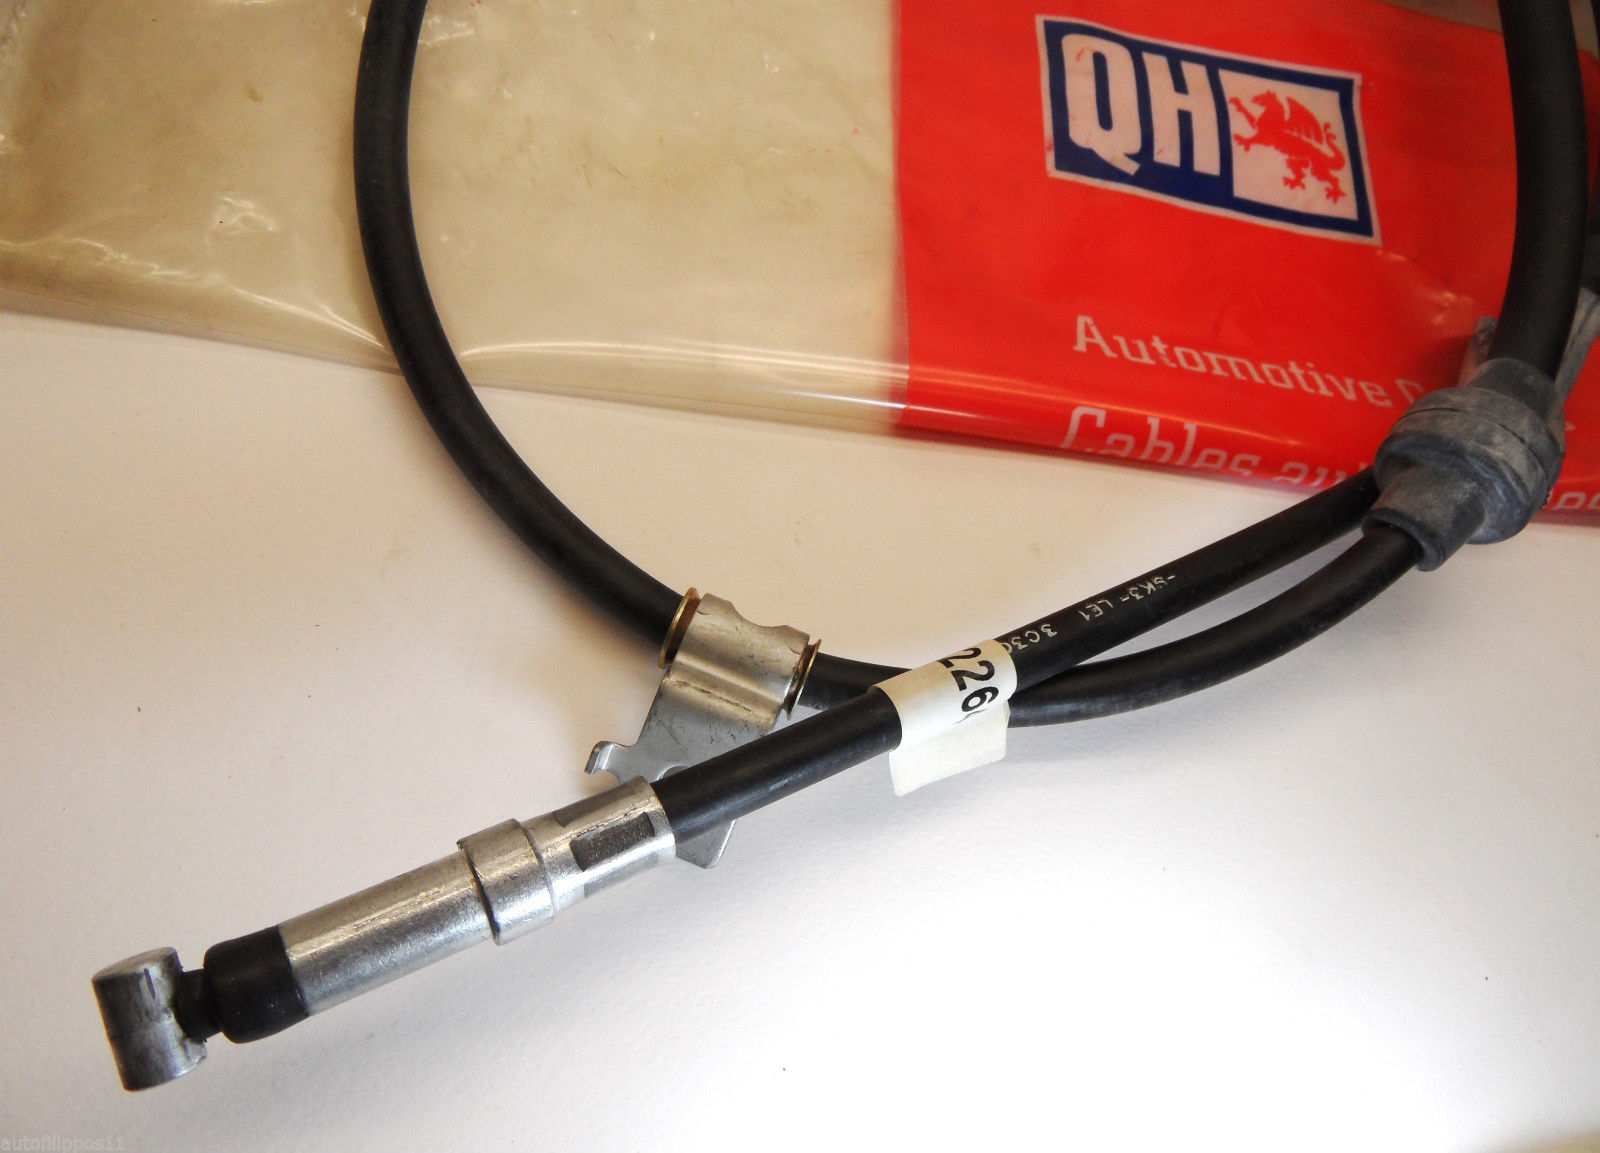 3050-1212 SPI Parking Brake Cable compatible with 1999-2004 Honda TRX400EX Sportrax Replaces 43455-HN1-003